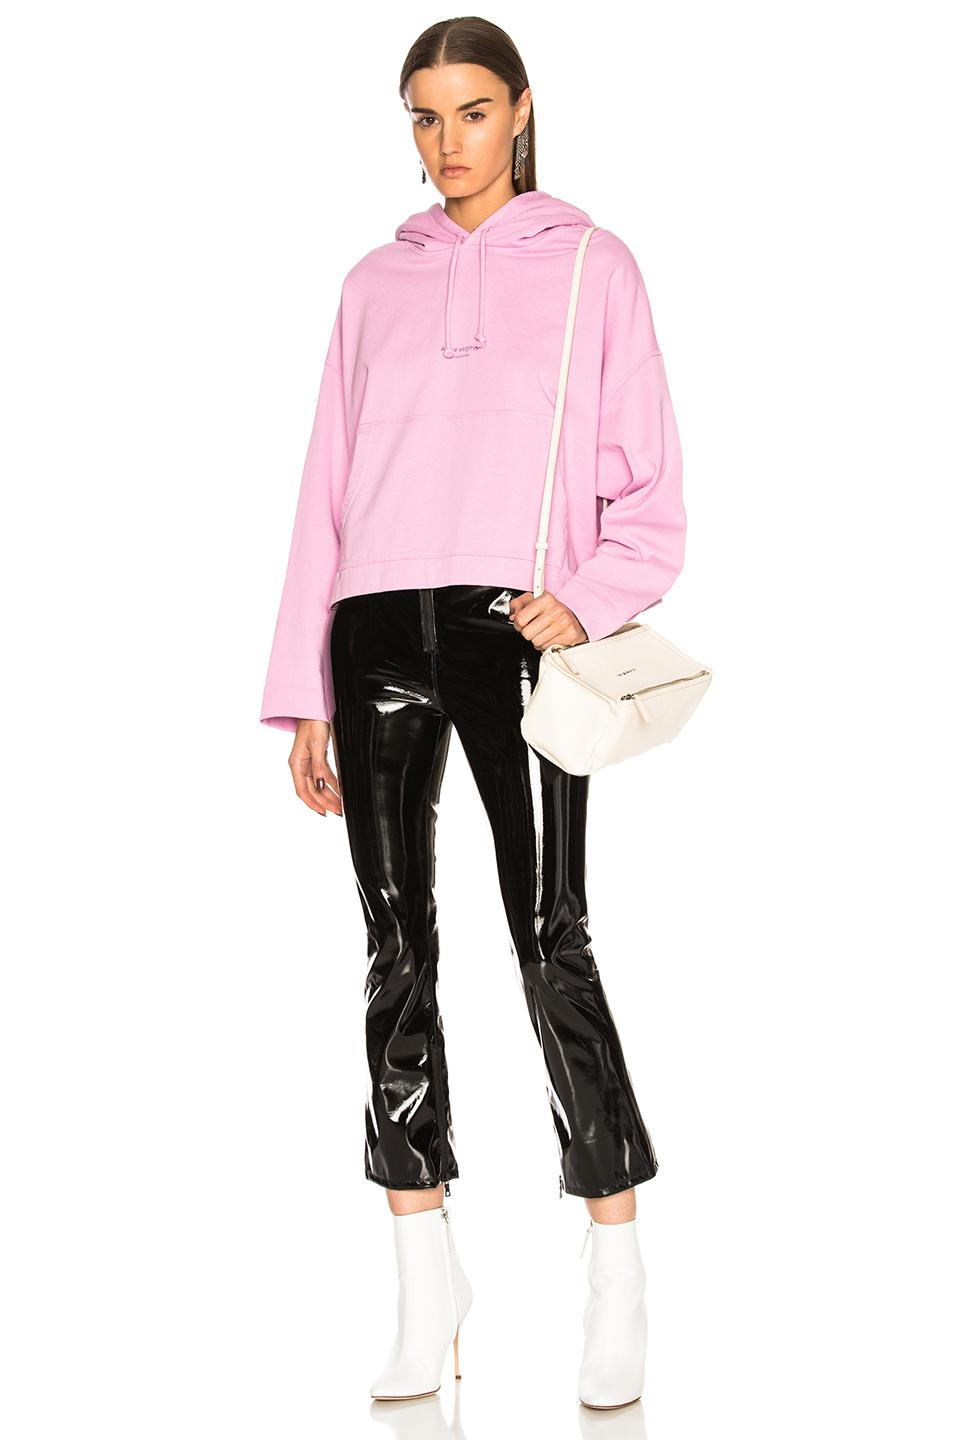 Acne Studios Cotton Joggy Hoodie in Candy Pink (Pink)